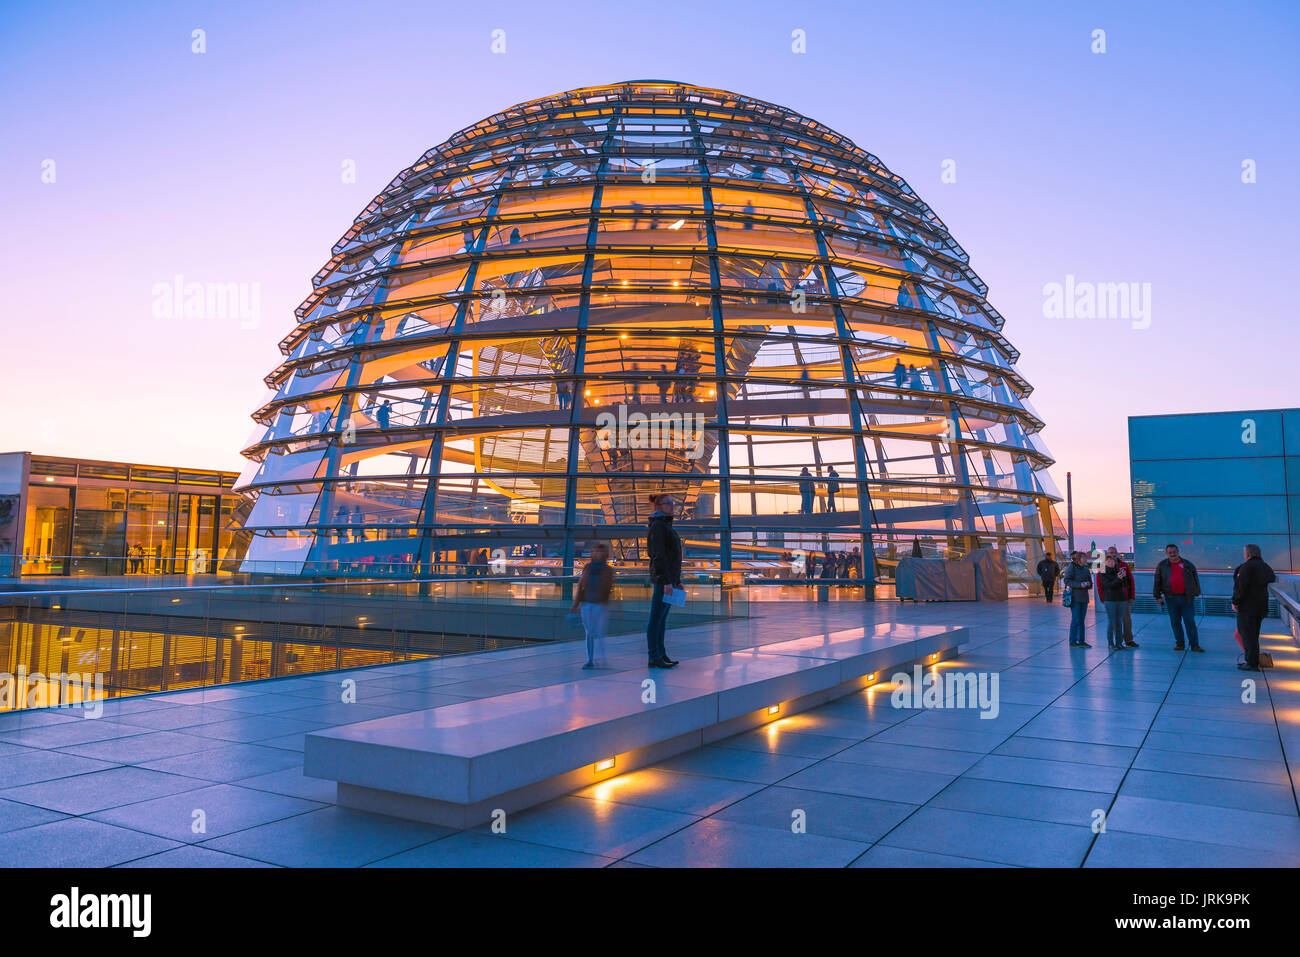 the reichstag dome stock photos the reichstag dome stock images alamy. Black Bedroom Furniture Sets. Home Design Ideas